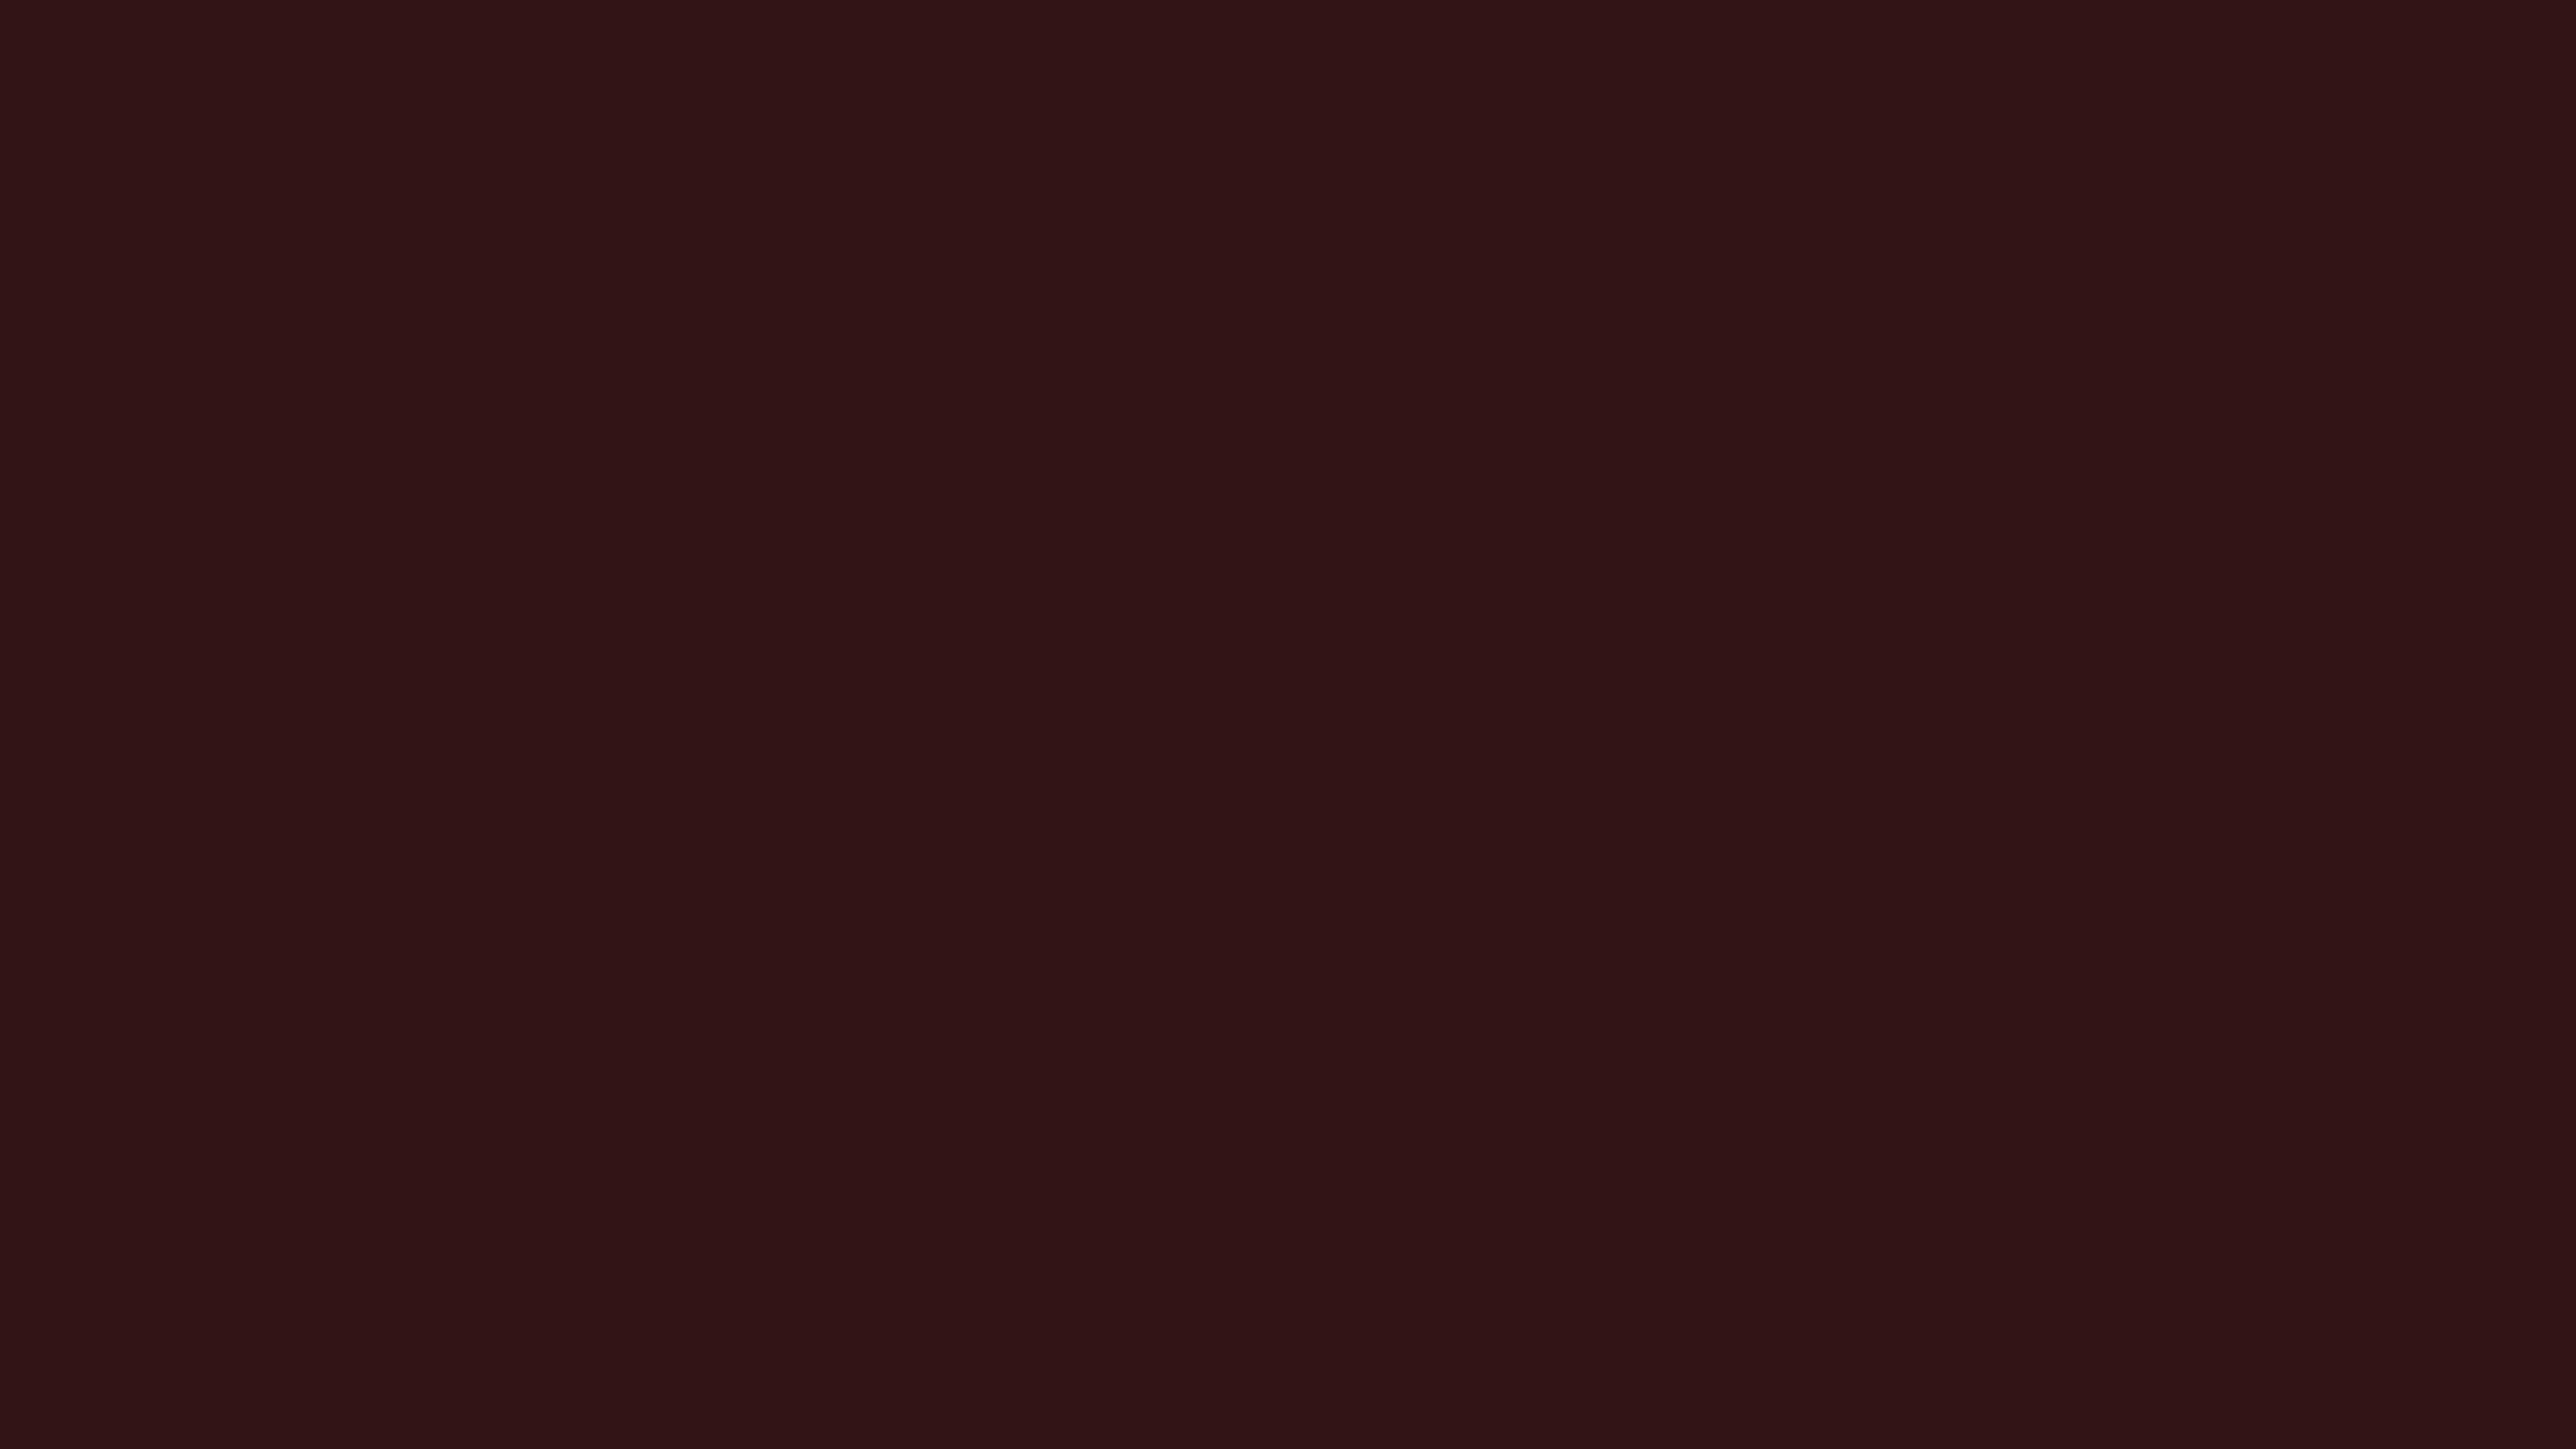 3840x2160 Seal Brown Solid Color Background